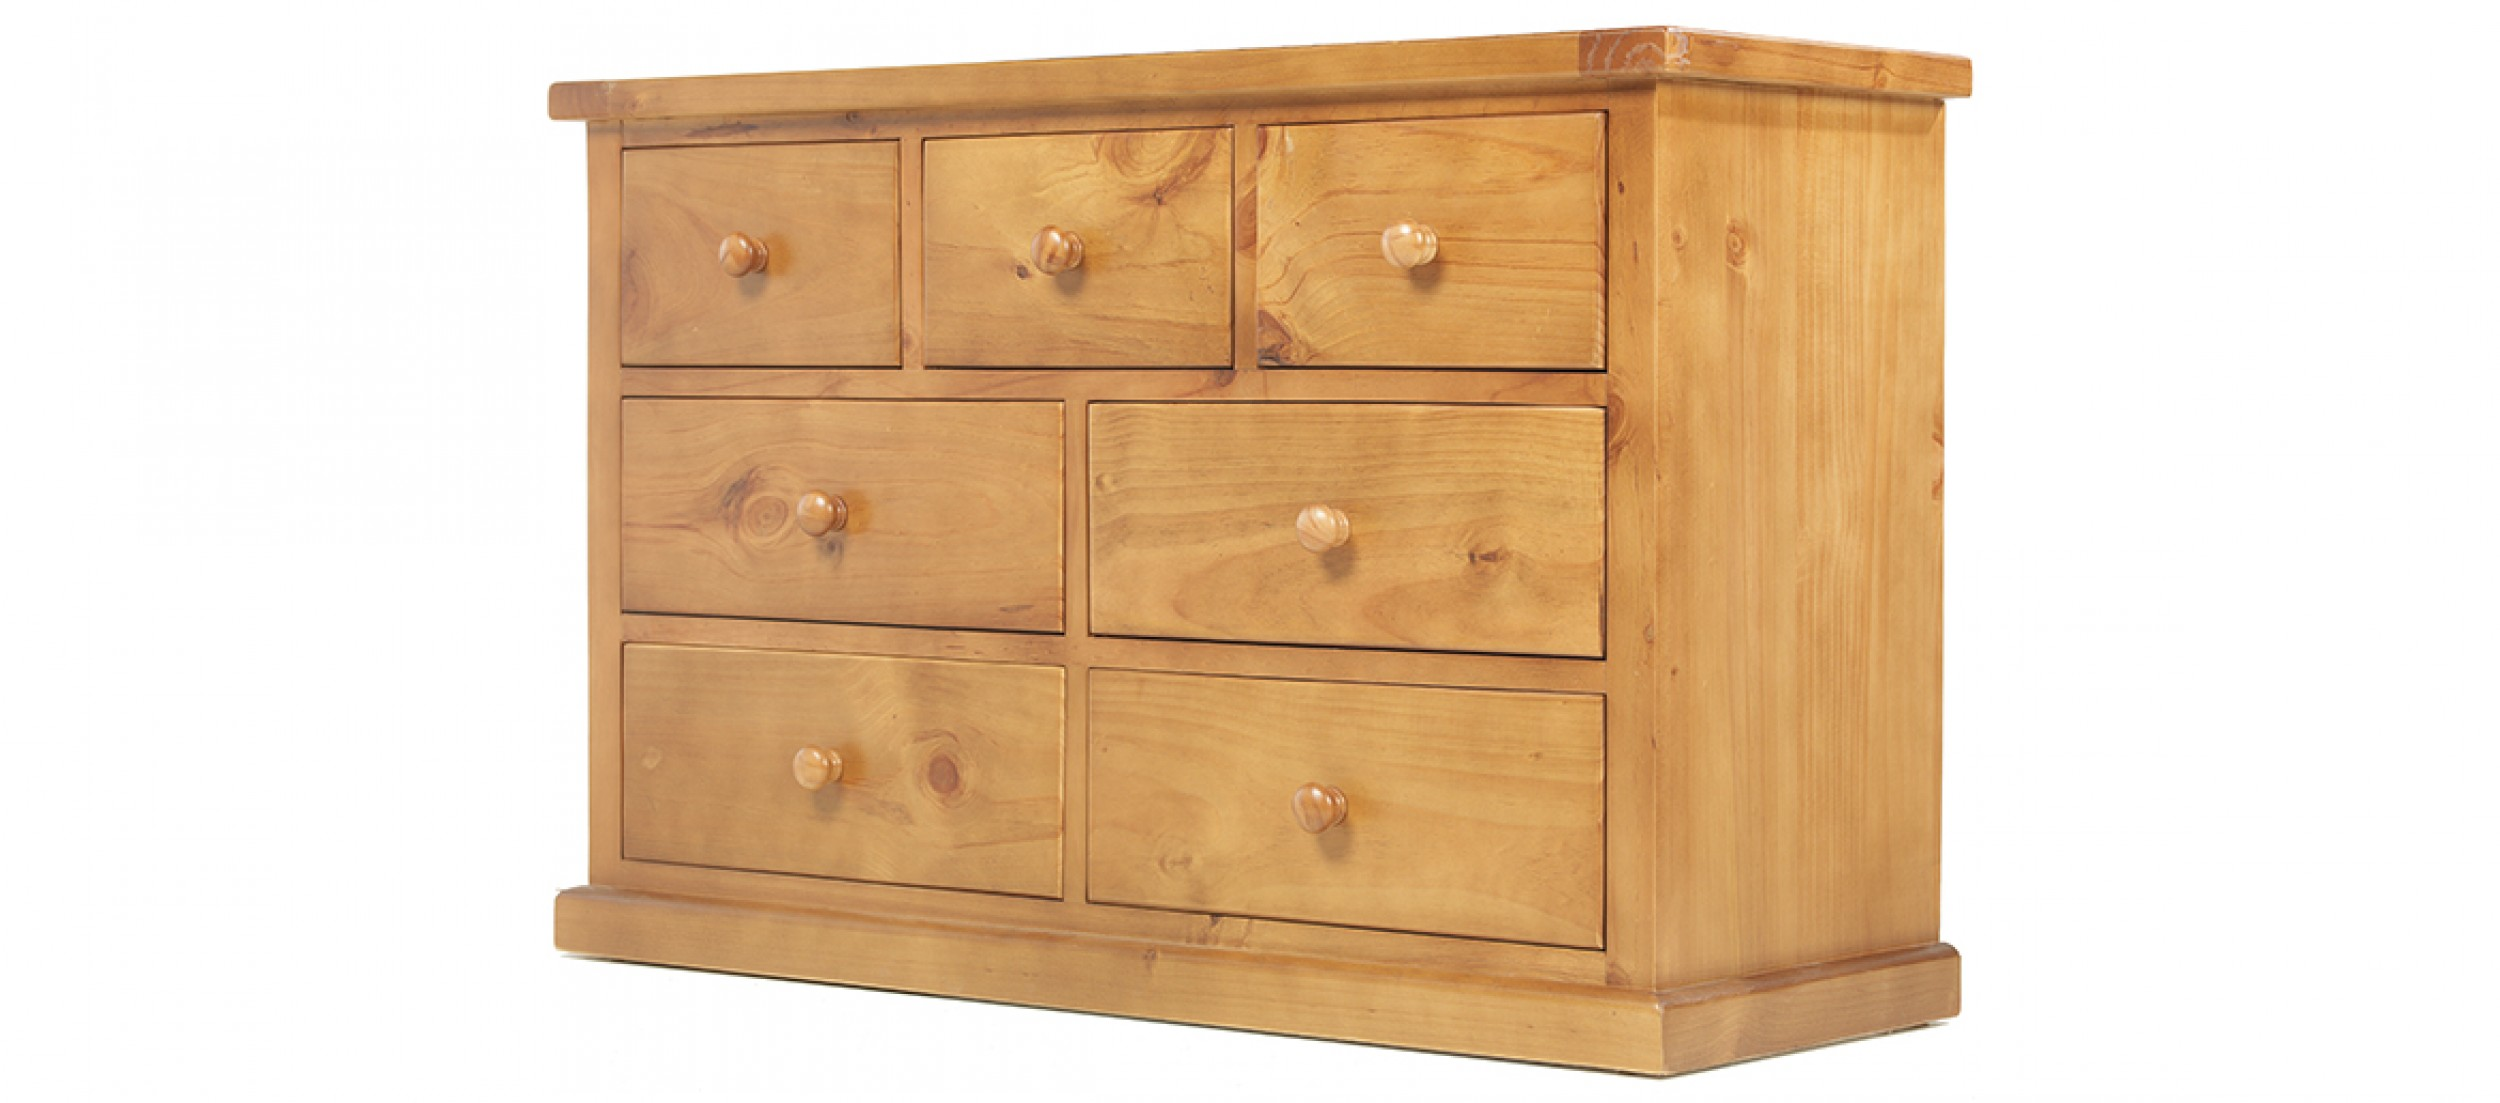 dressers media dvd tv turquoise drawers for stand up sale where black chest with cheap dresser white bedroom large of oak wall rustic storage near to me tall buy furniture